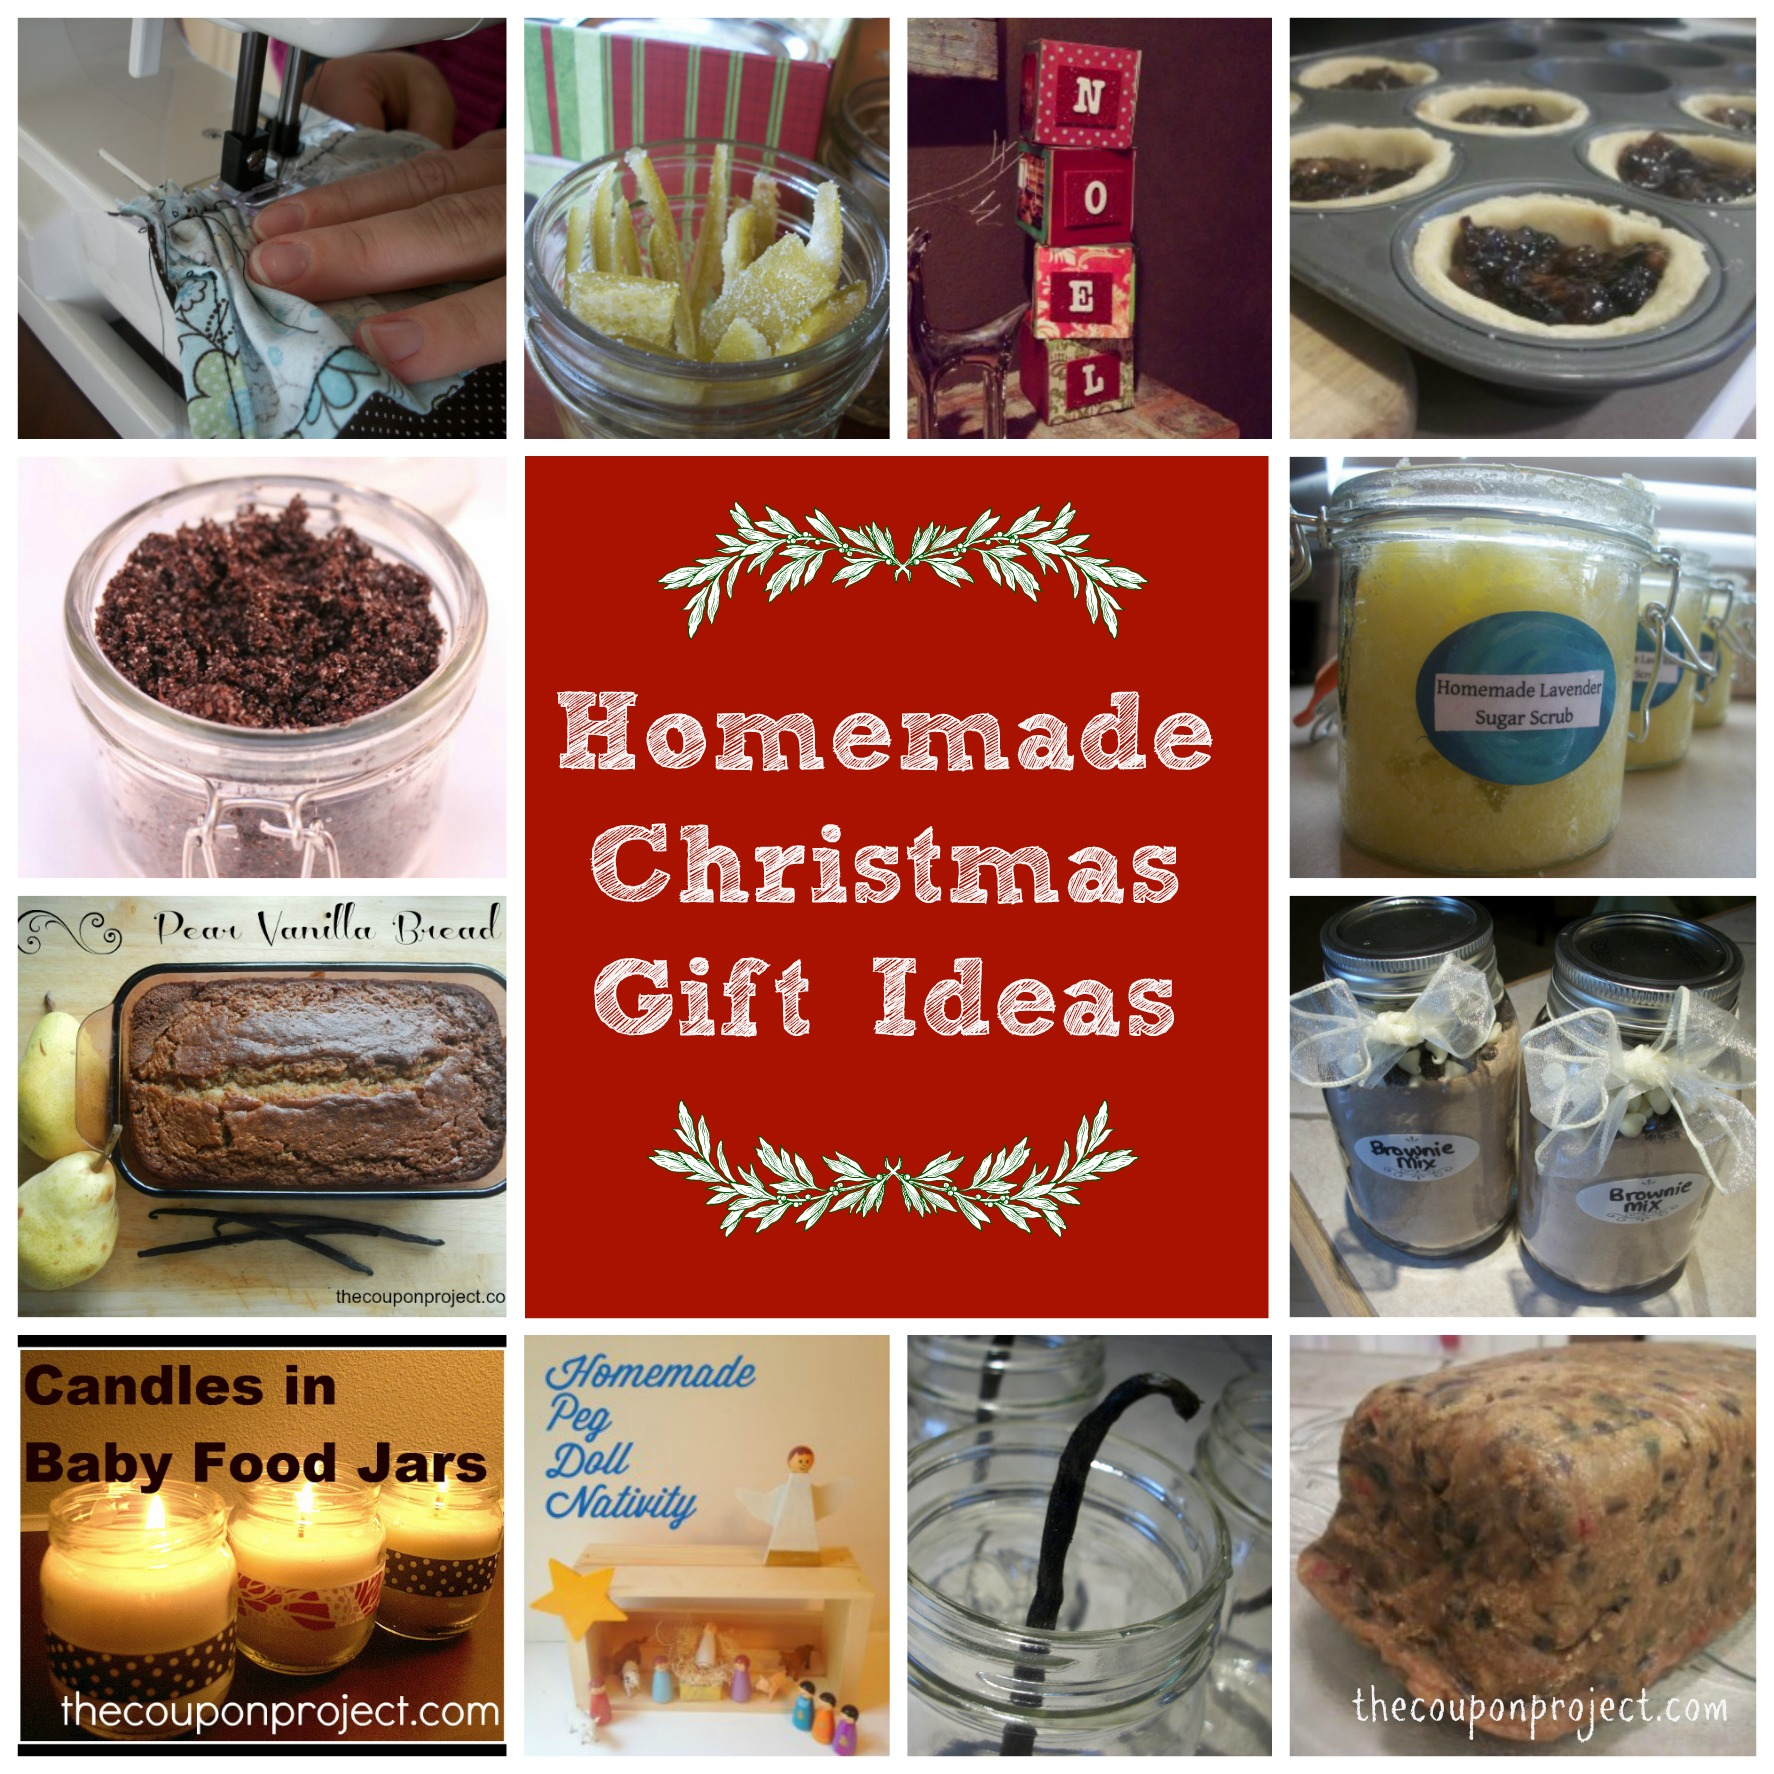 Homemade Gift Ideas: Homemade Christmas Gift Ideas